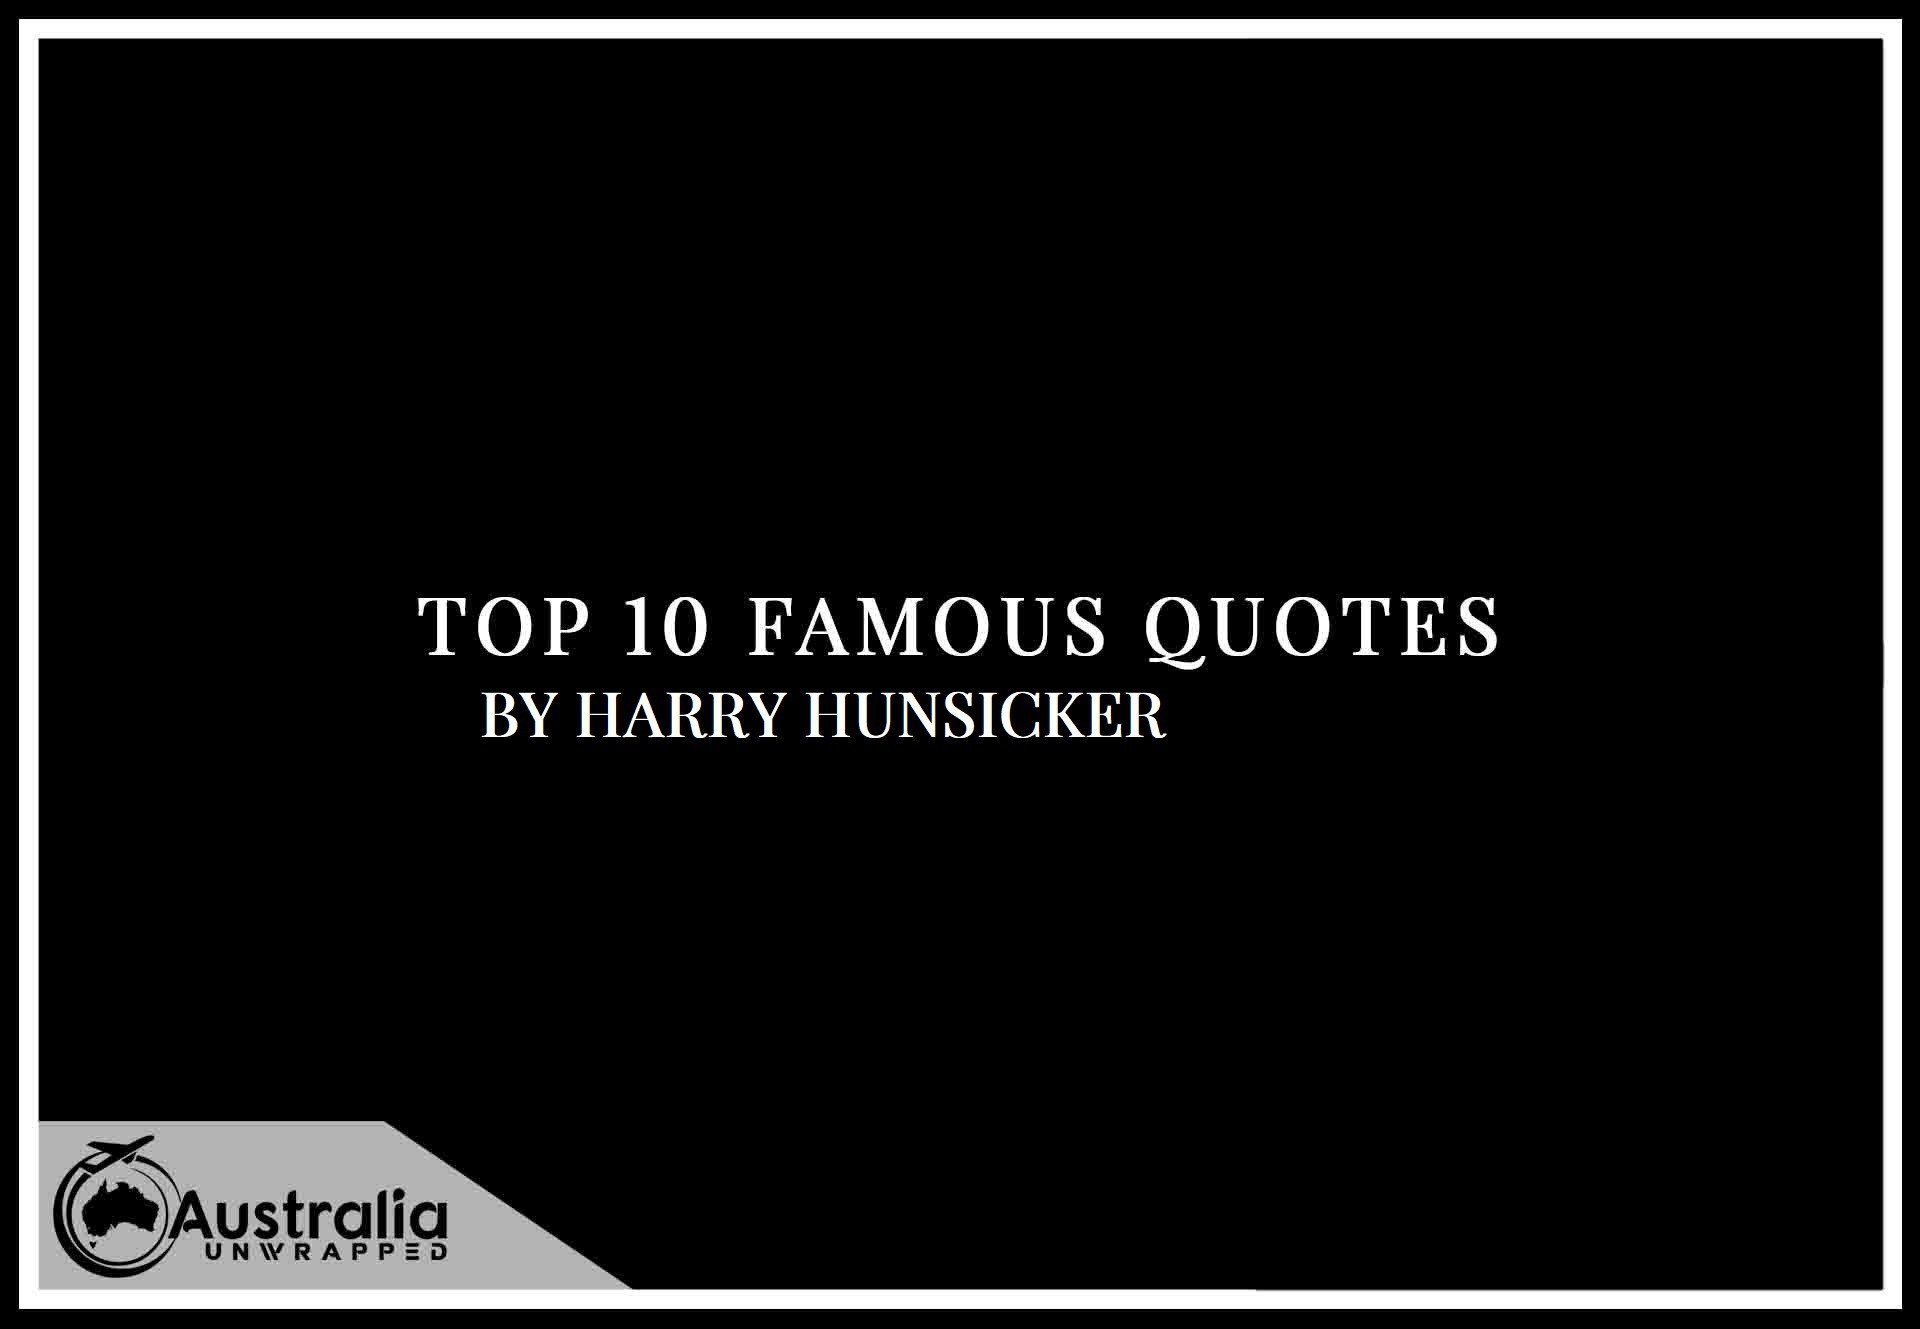 Top 10 Famous Quotes by Author Harry Kemelman